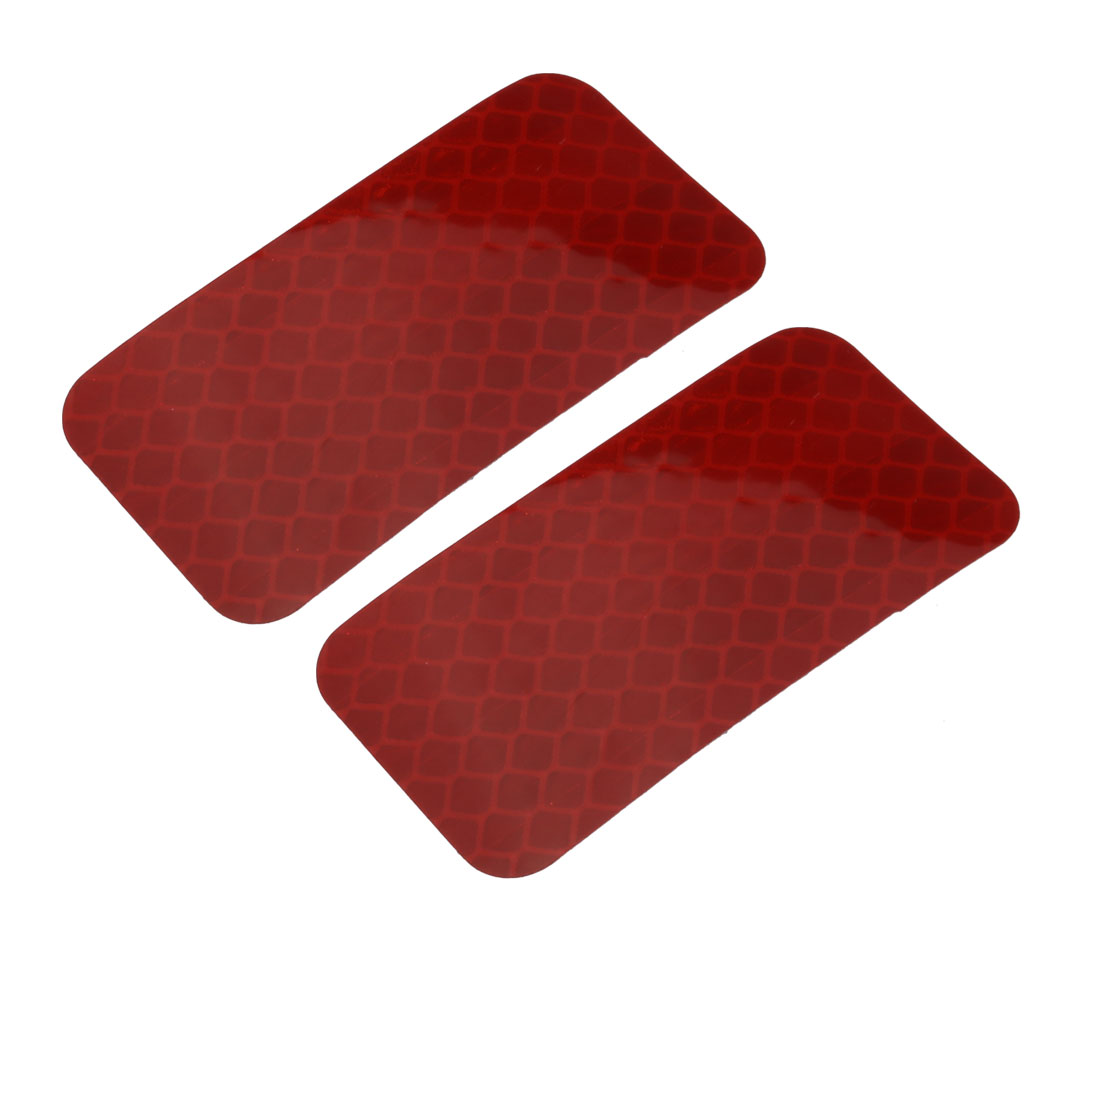 2pcs Honeycomb Reflective Warning Tape Film Sticker Red 30mm x 60mm